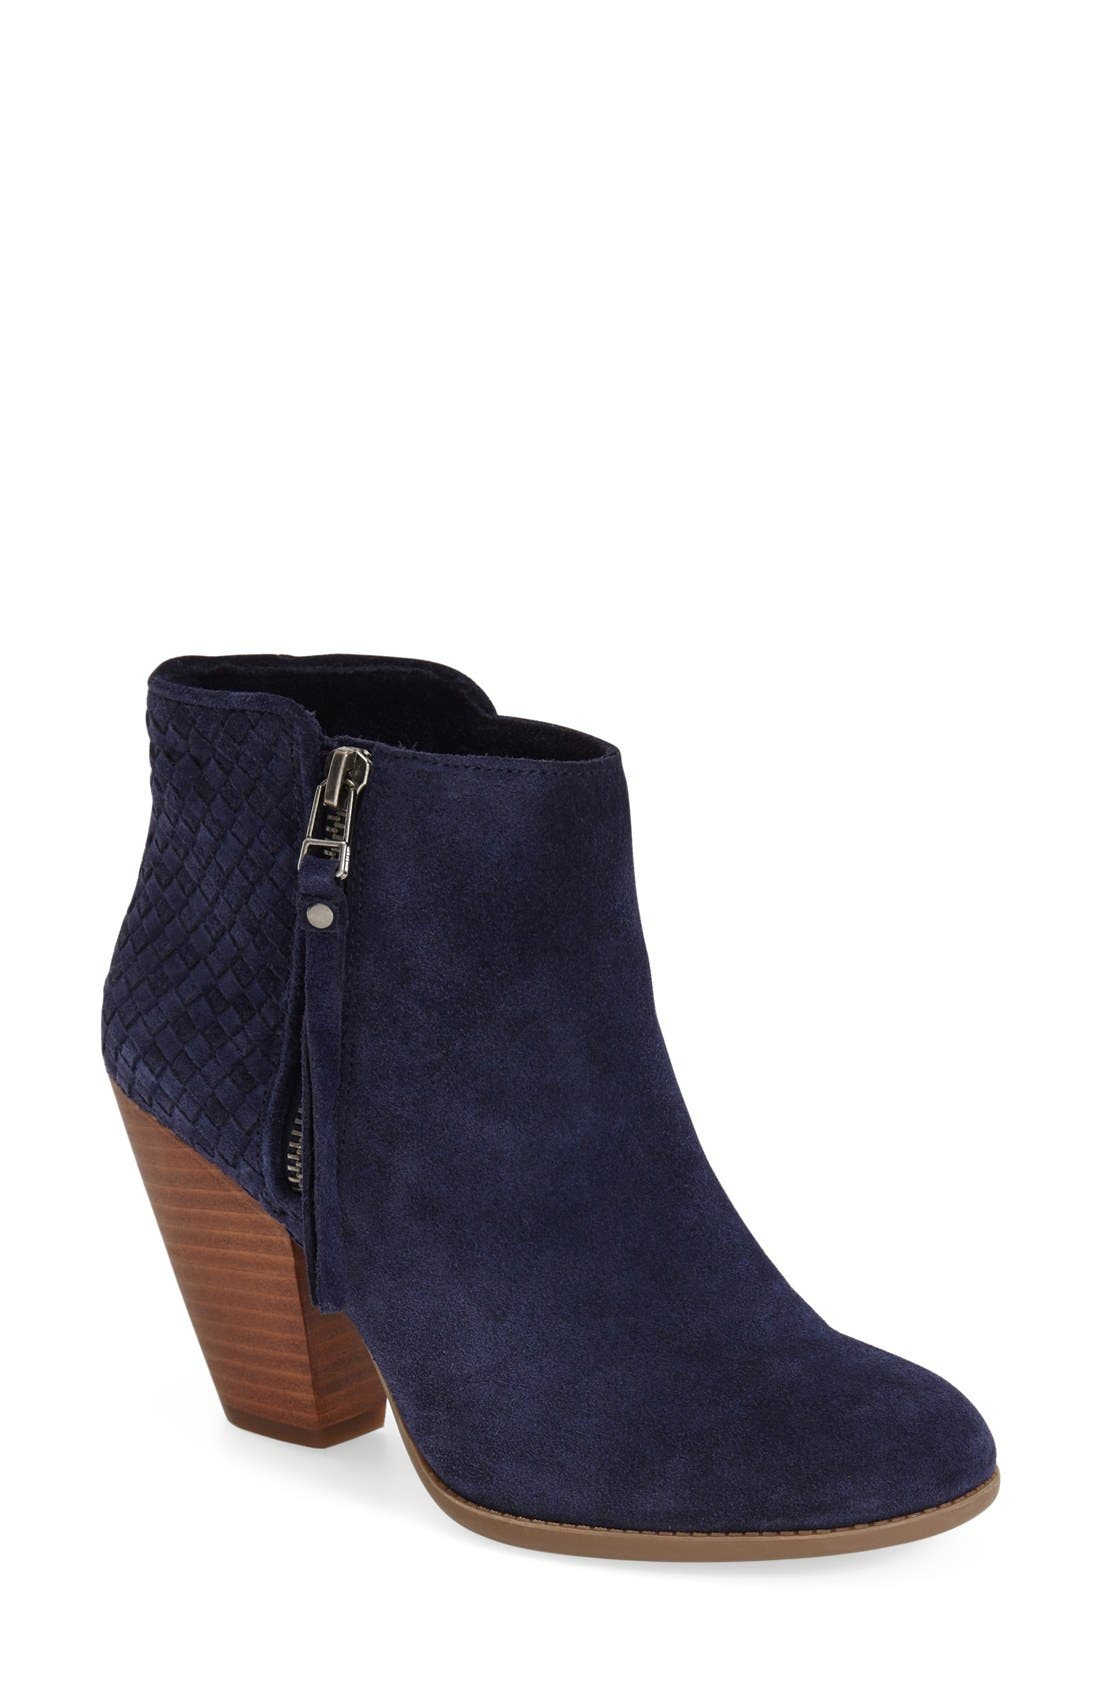 Alternate Image 1 Selected - Sole Society 'Zada' Bootie (Women)